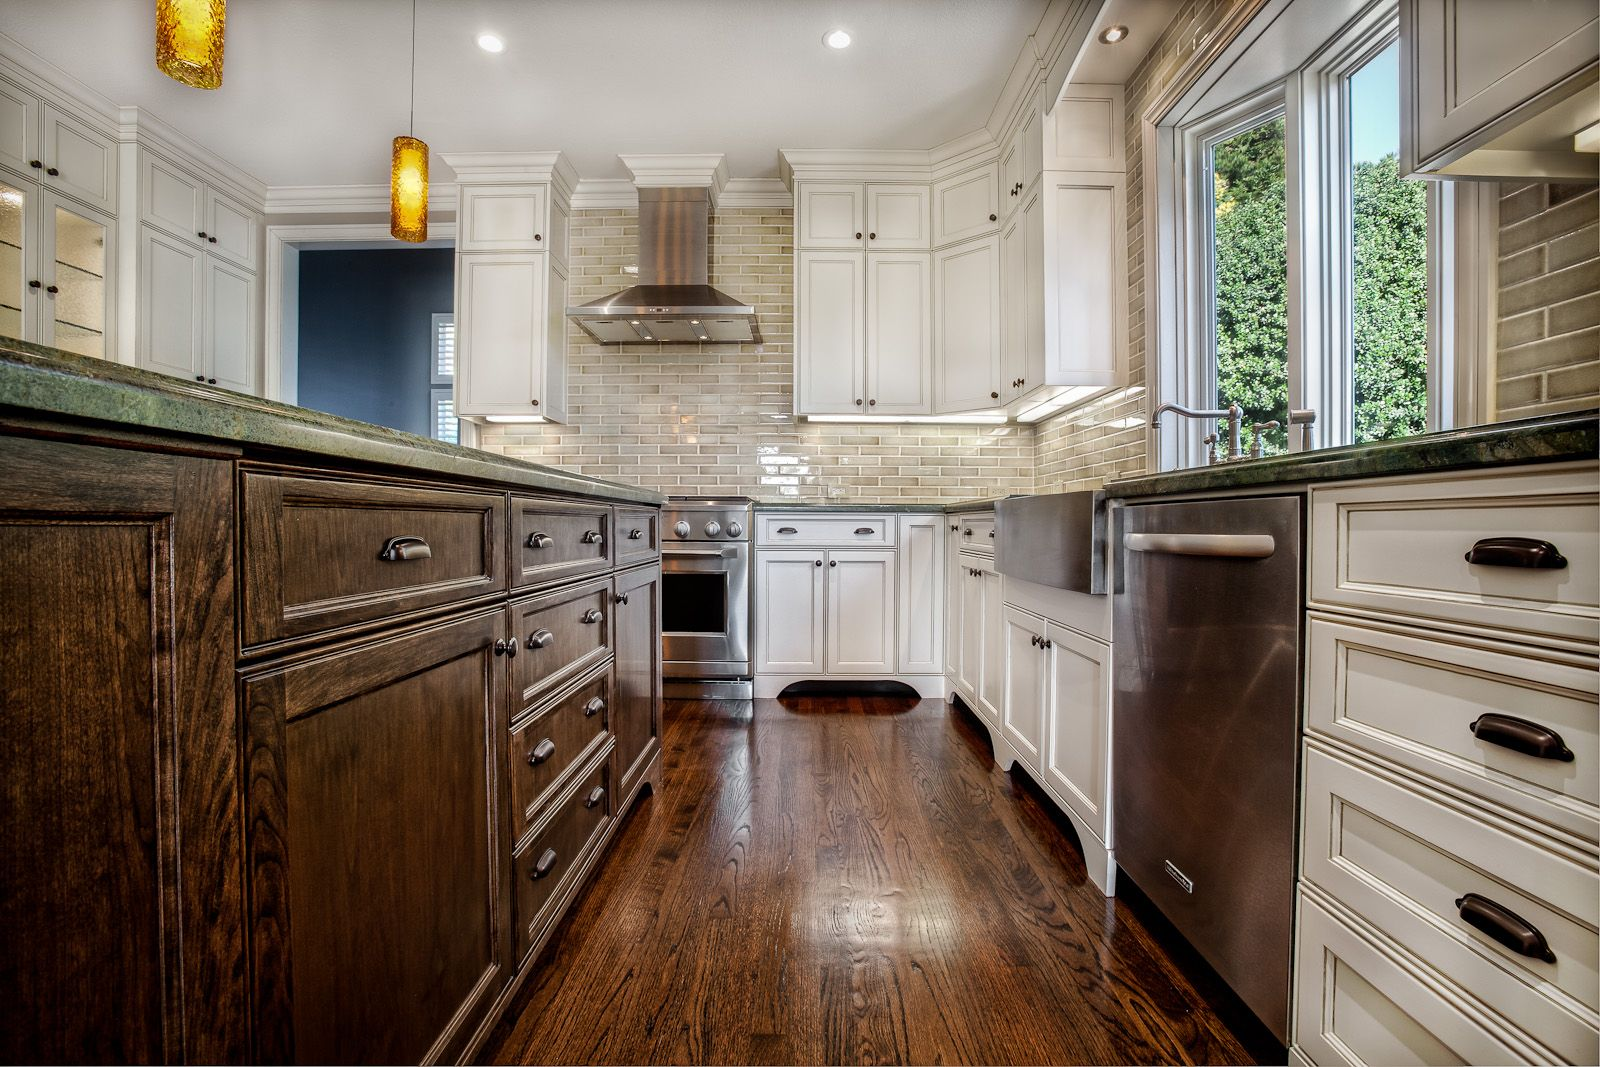 Joe Ercoli Sf Bay Area Commercial Photography Classic White Kitchen Kitchen Dinning Room Custom Kitchen Cabinets